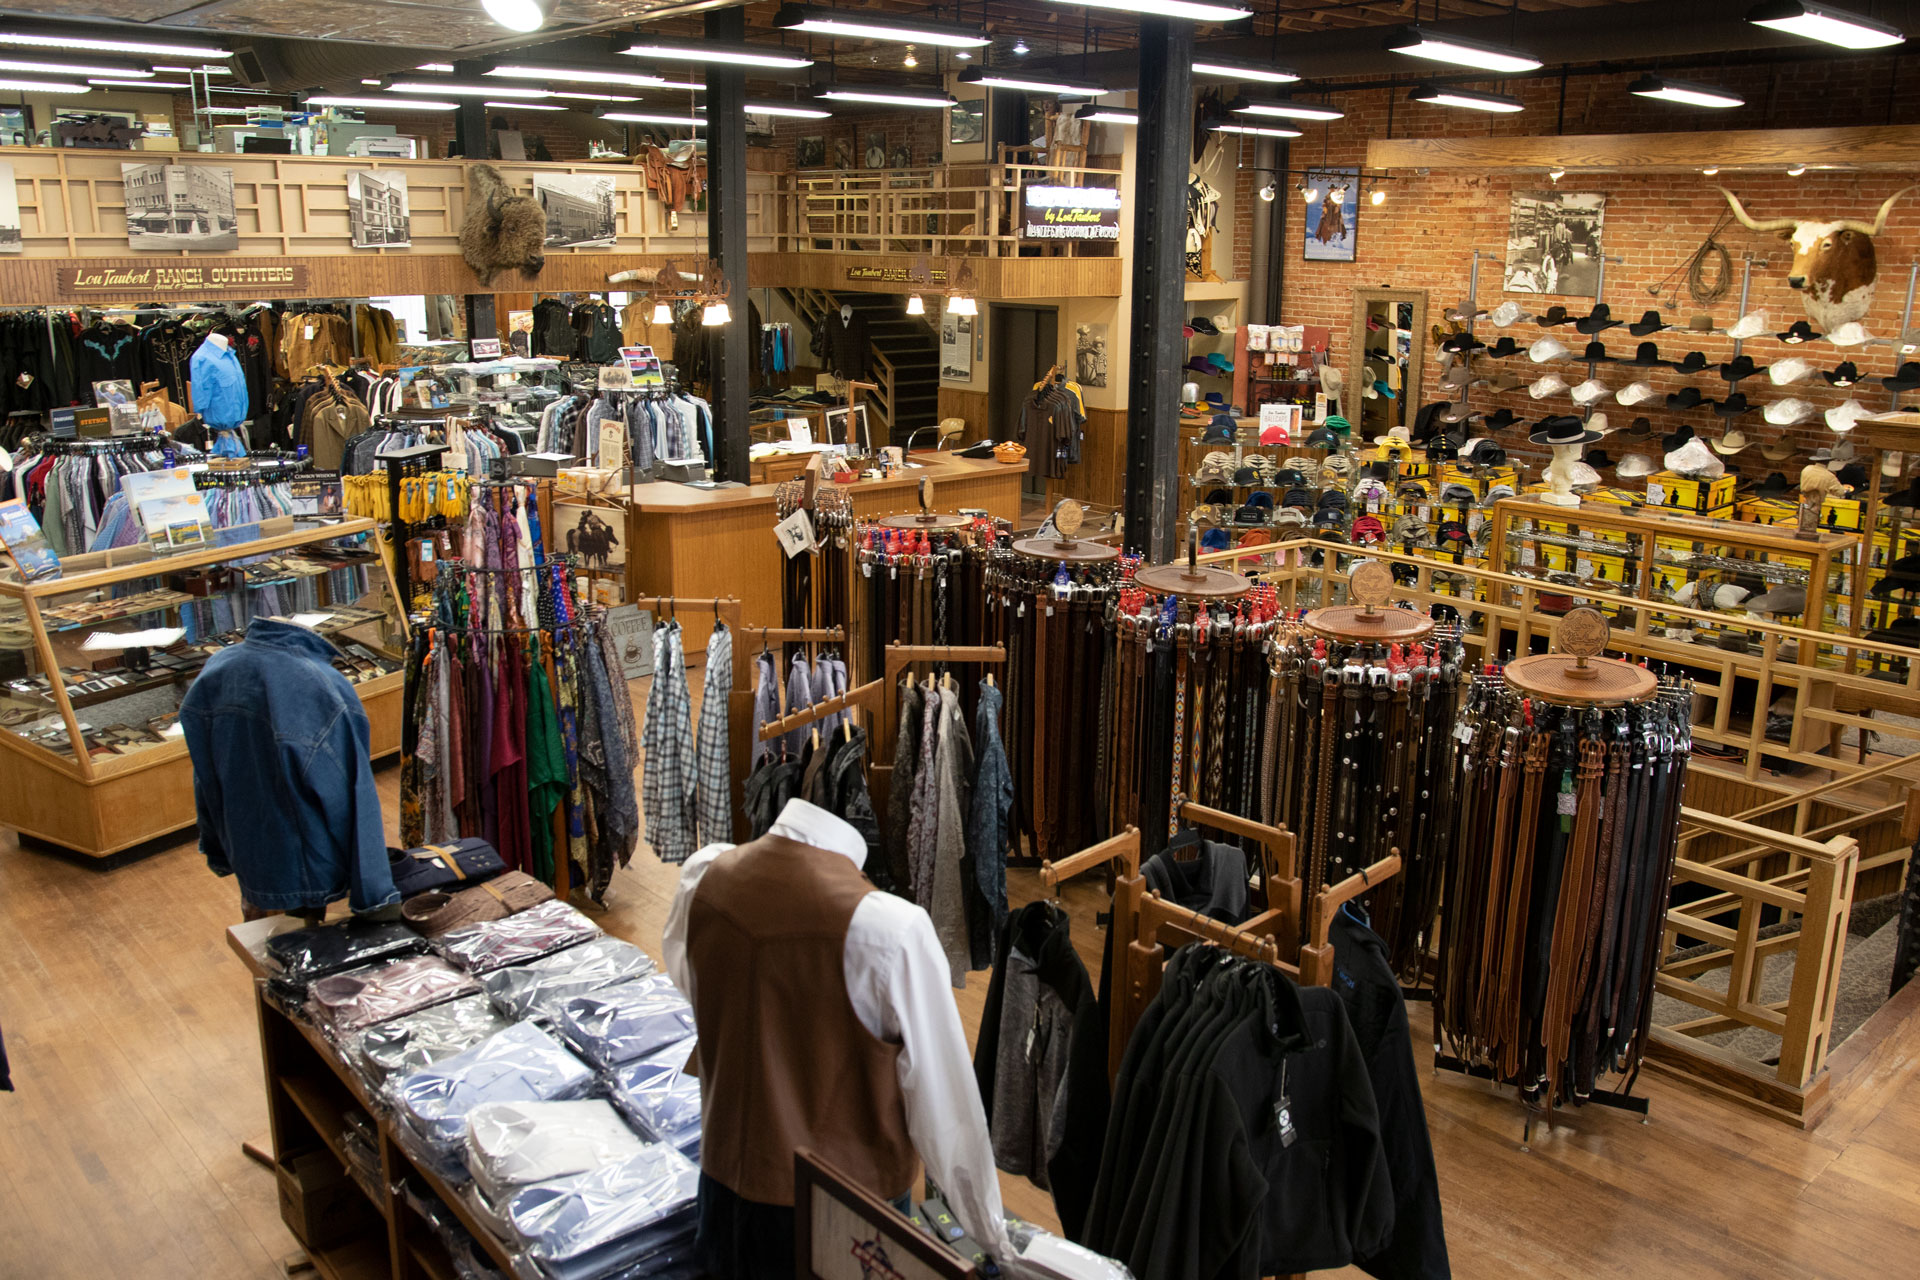 """The Main Floor"" - With high-quality felt hats, belts, men's shirts and a range of western accessories, our main floor will welcome you with an array of western eye candy, but don't stop here, we still have 8 more floors."